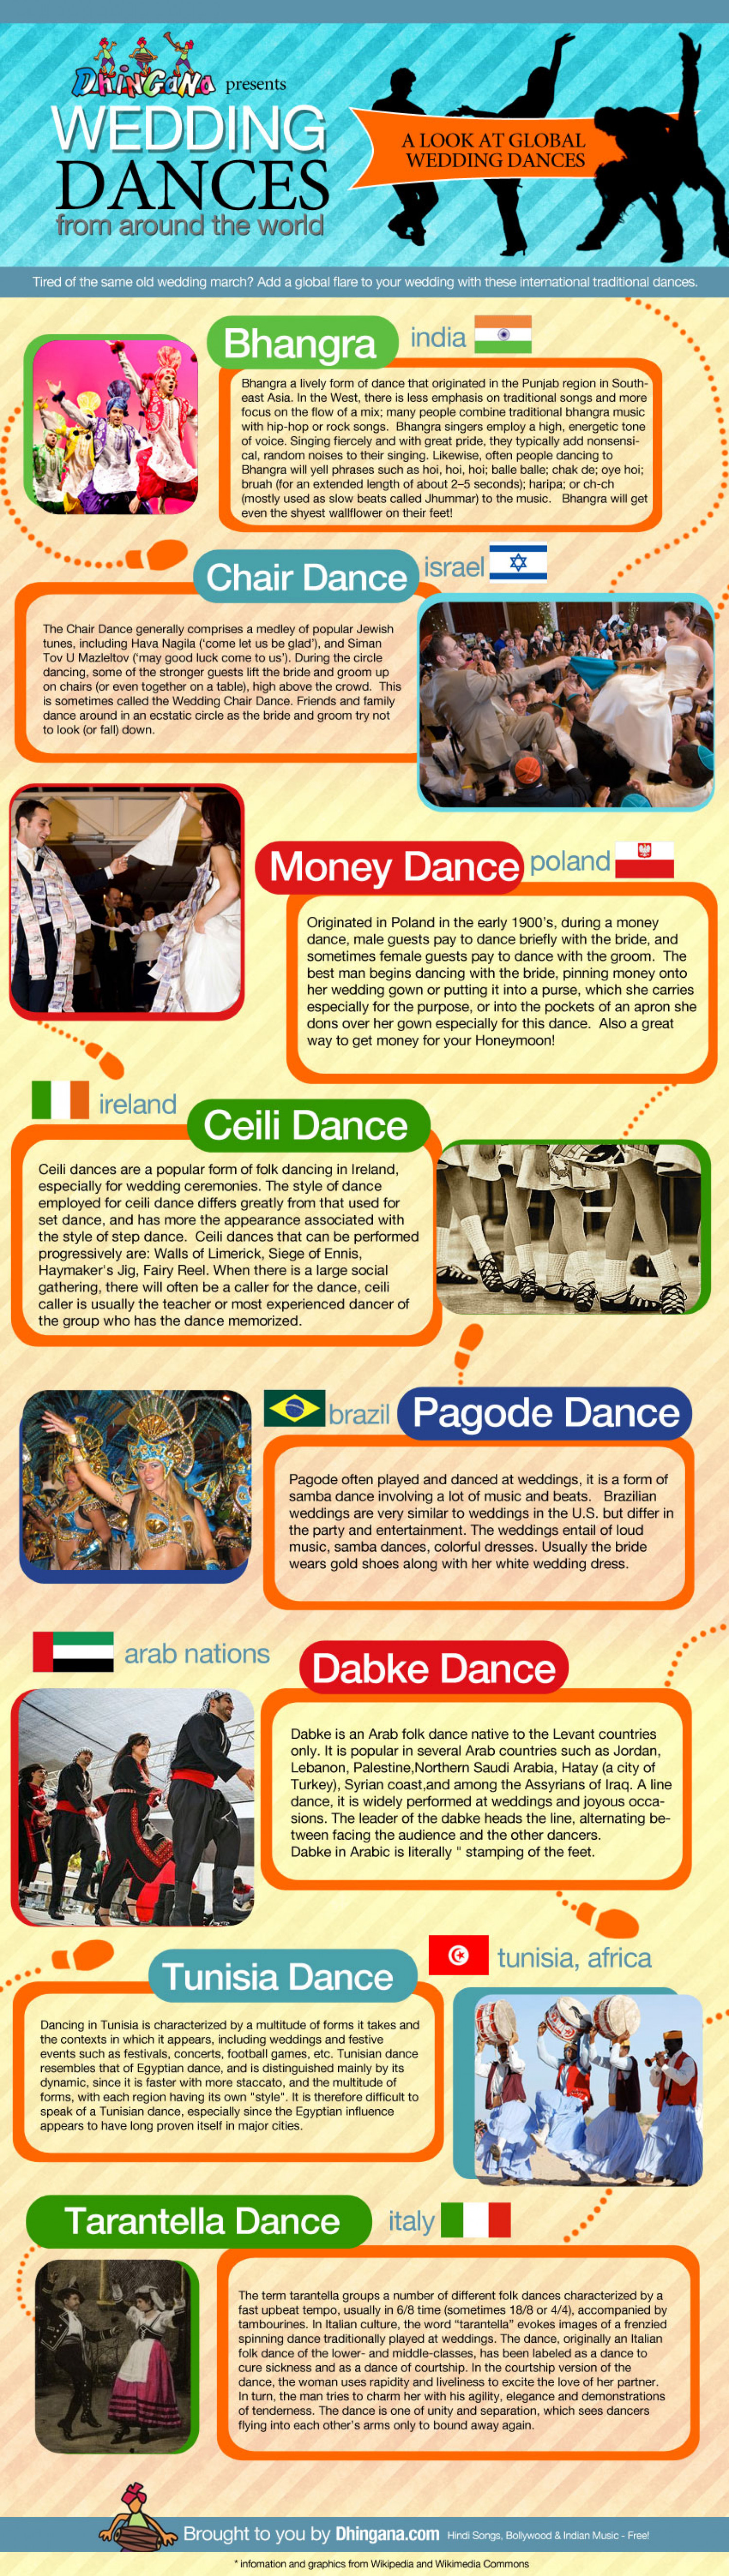 Wedding Dances from Around the World Infographic